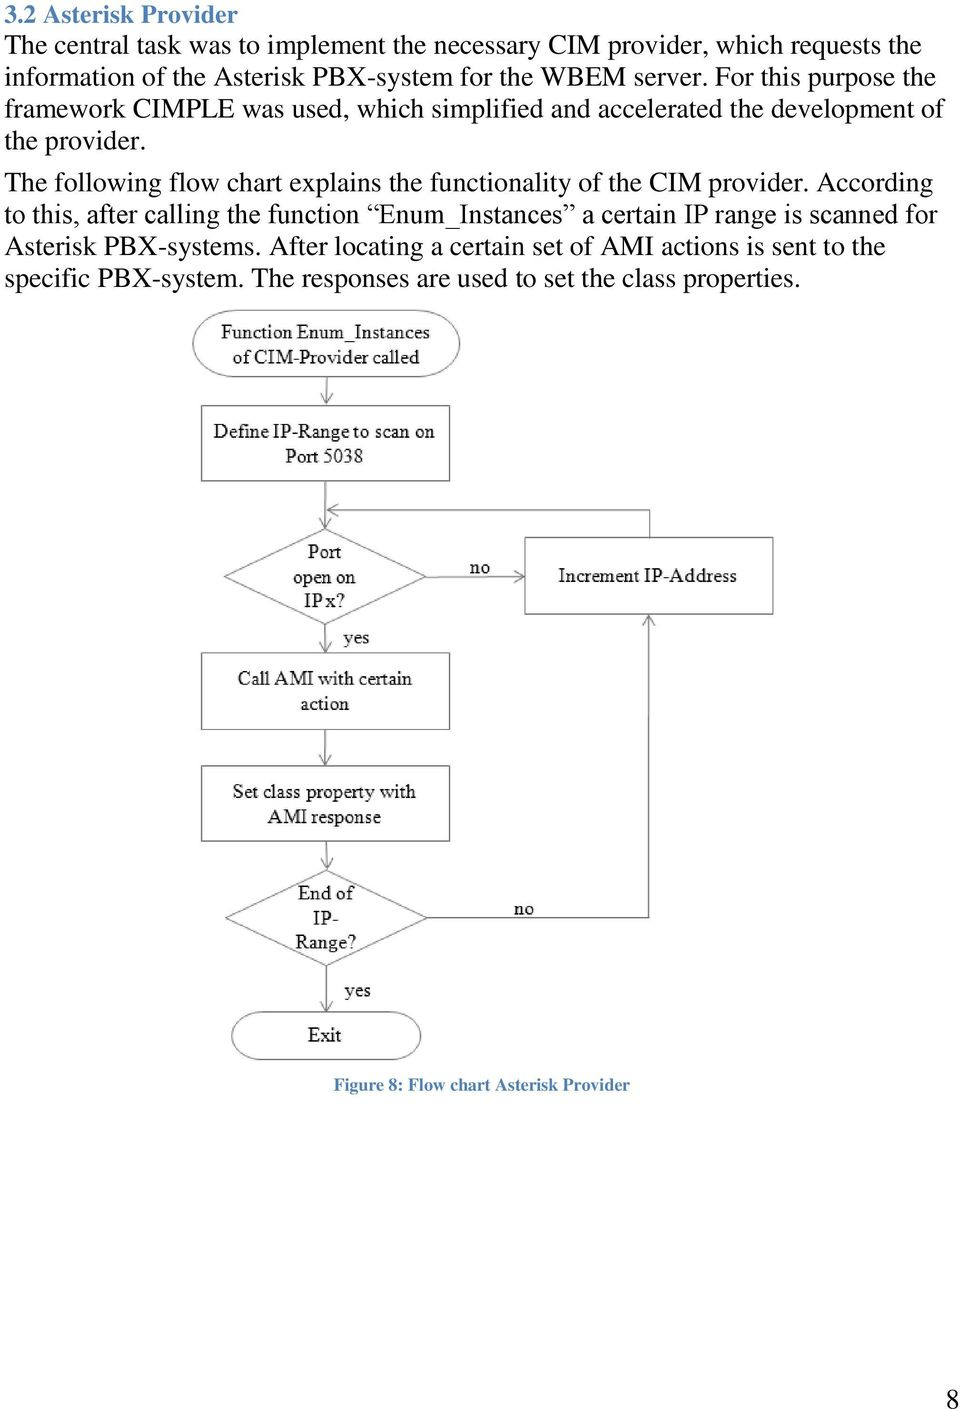 The following flow chart explains the functionality of the CIM provider.